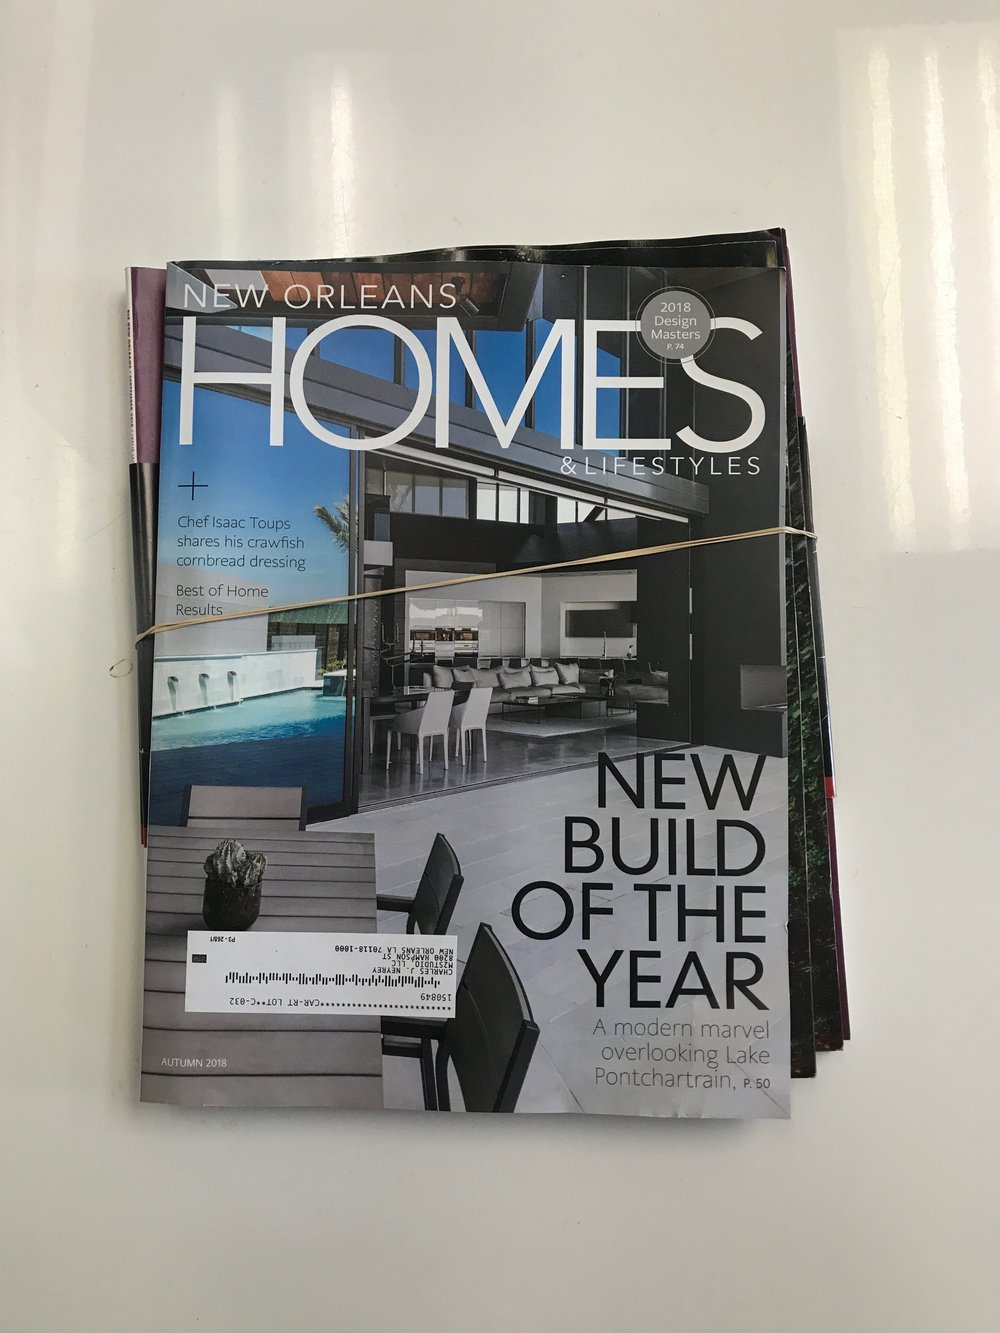 NEW BUILD OF THE YEAR |  NEW ORLEANS HOMES & LIFESTYLES AUTUMN 2018